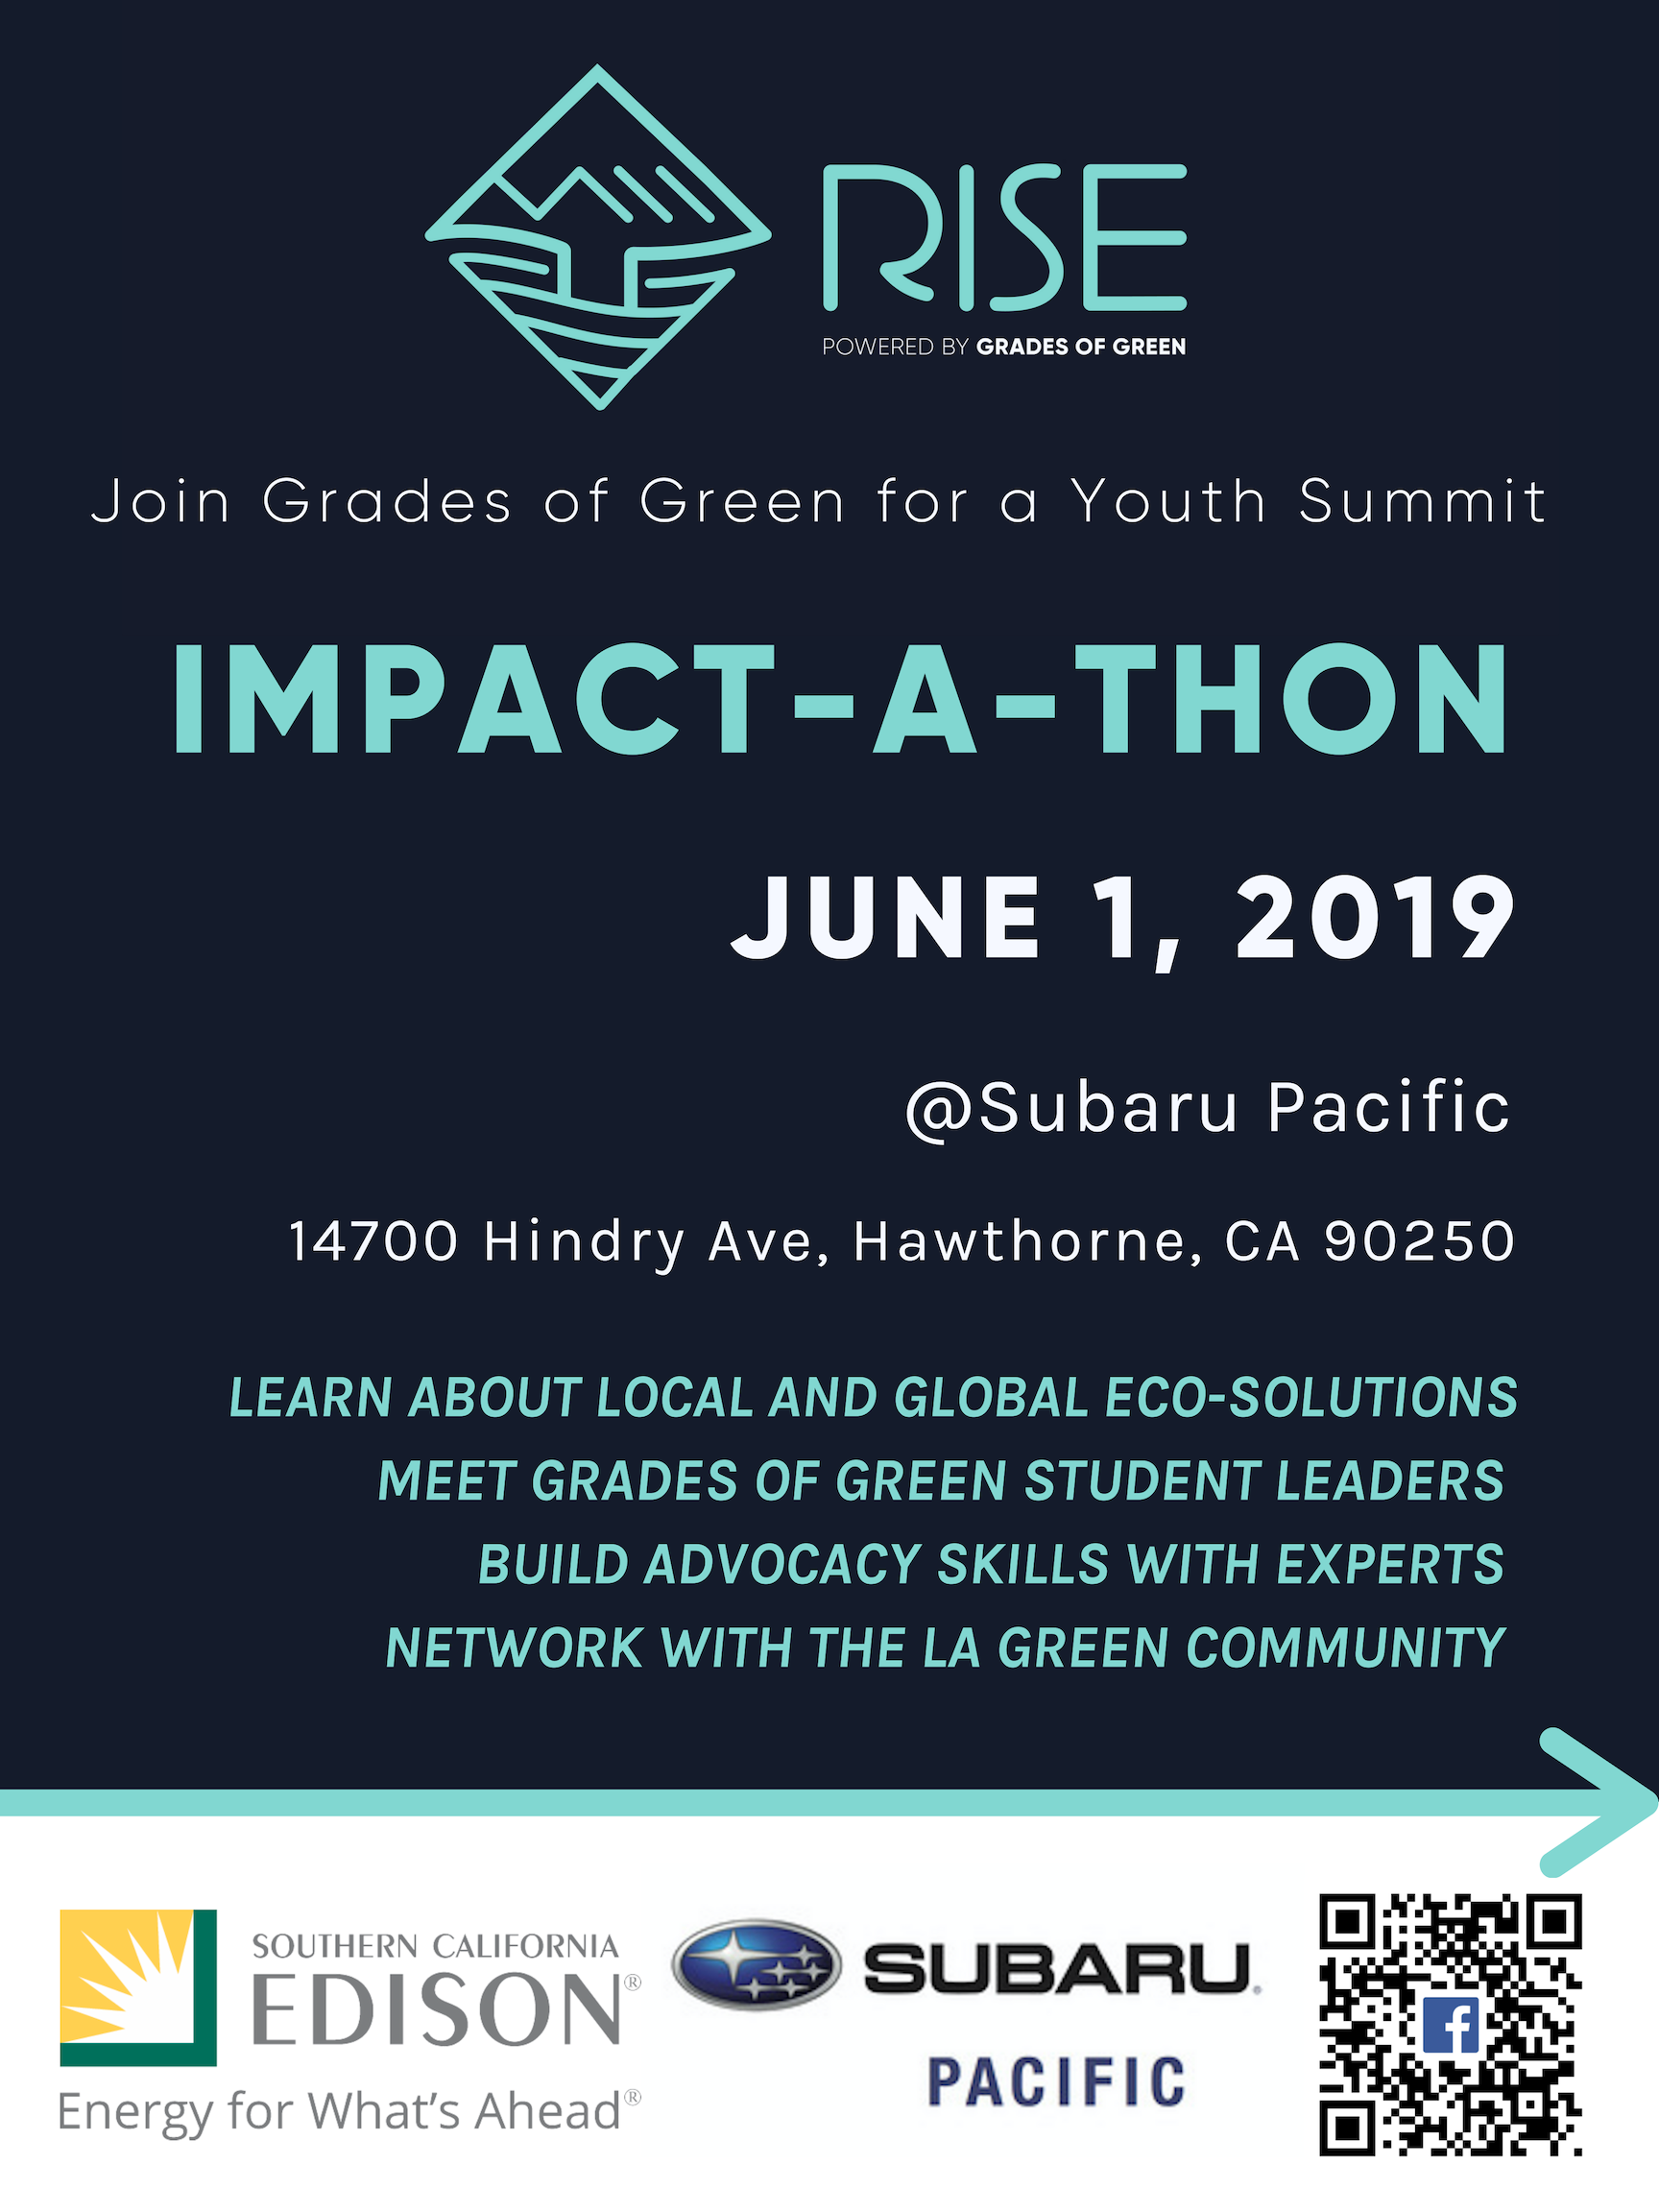 Impact-a-thon Save the Date